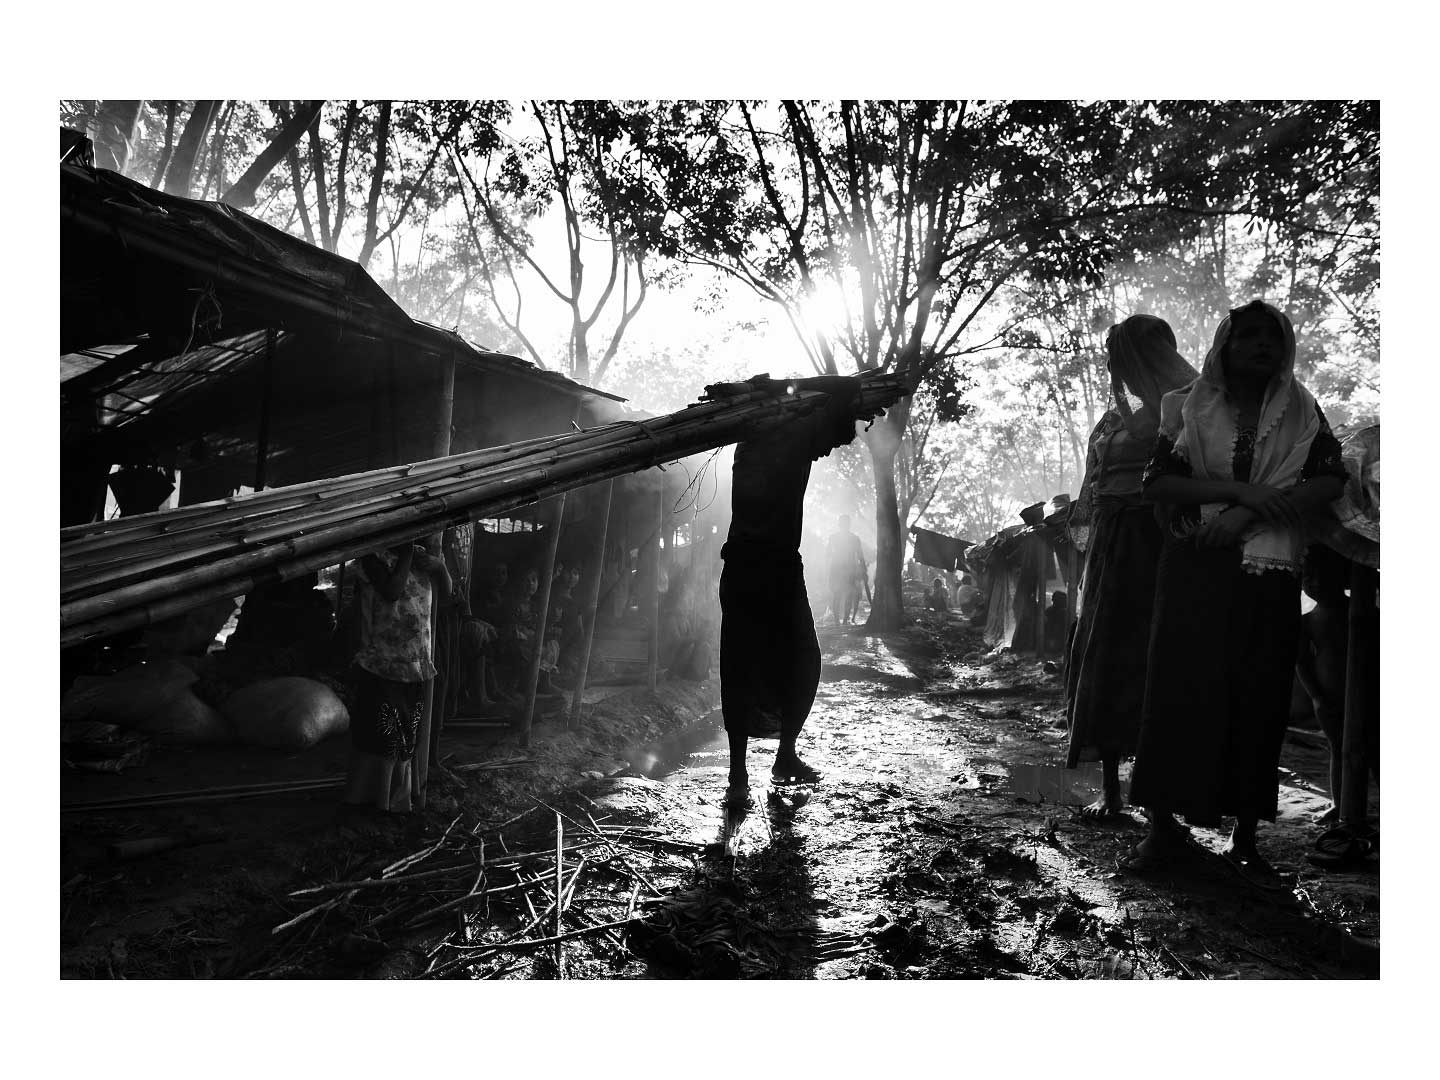 A Rohingya man carries a load of bamboo which he will use to build his family's hut. Photo by Greg Constantine.